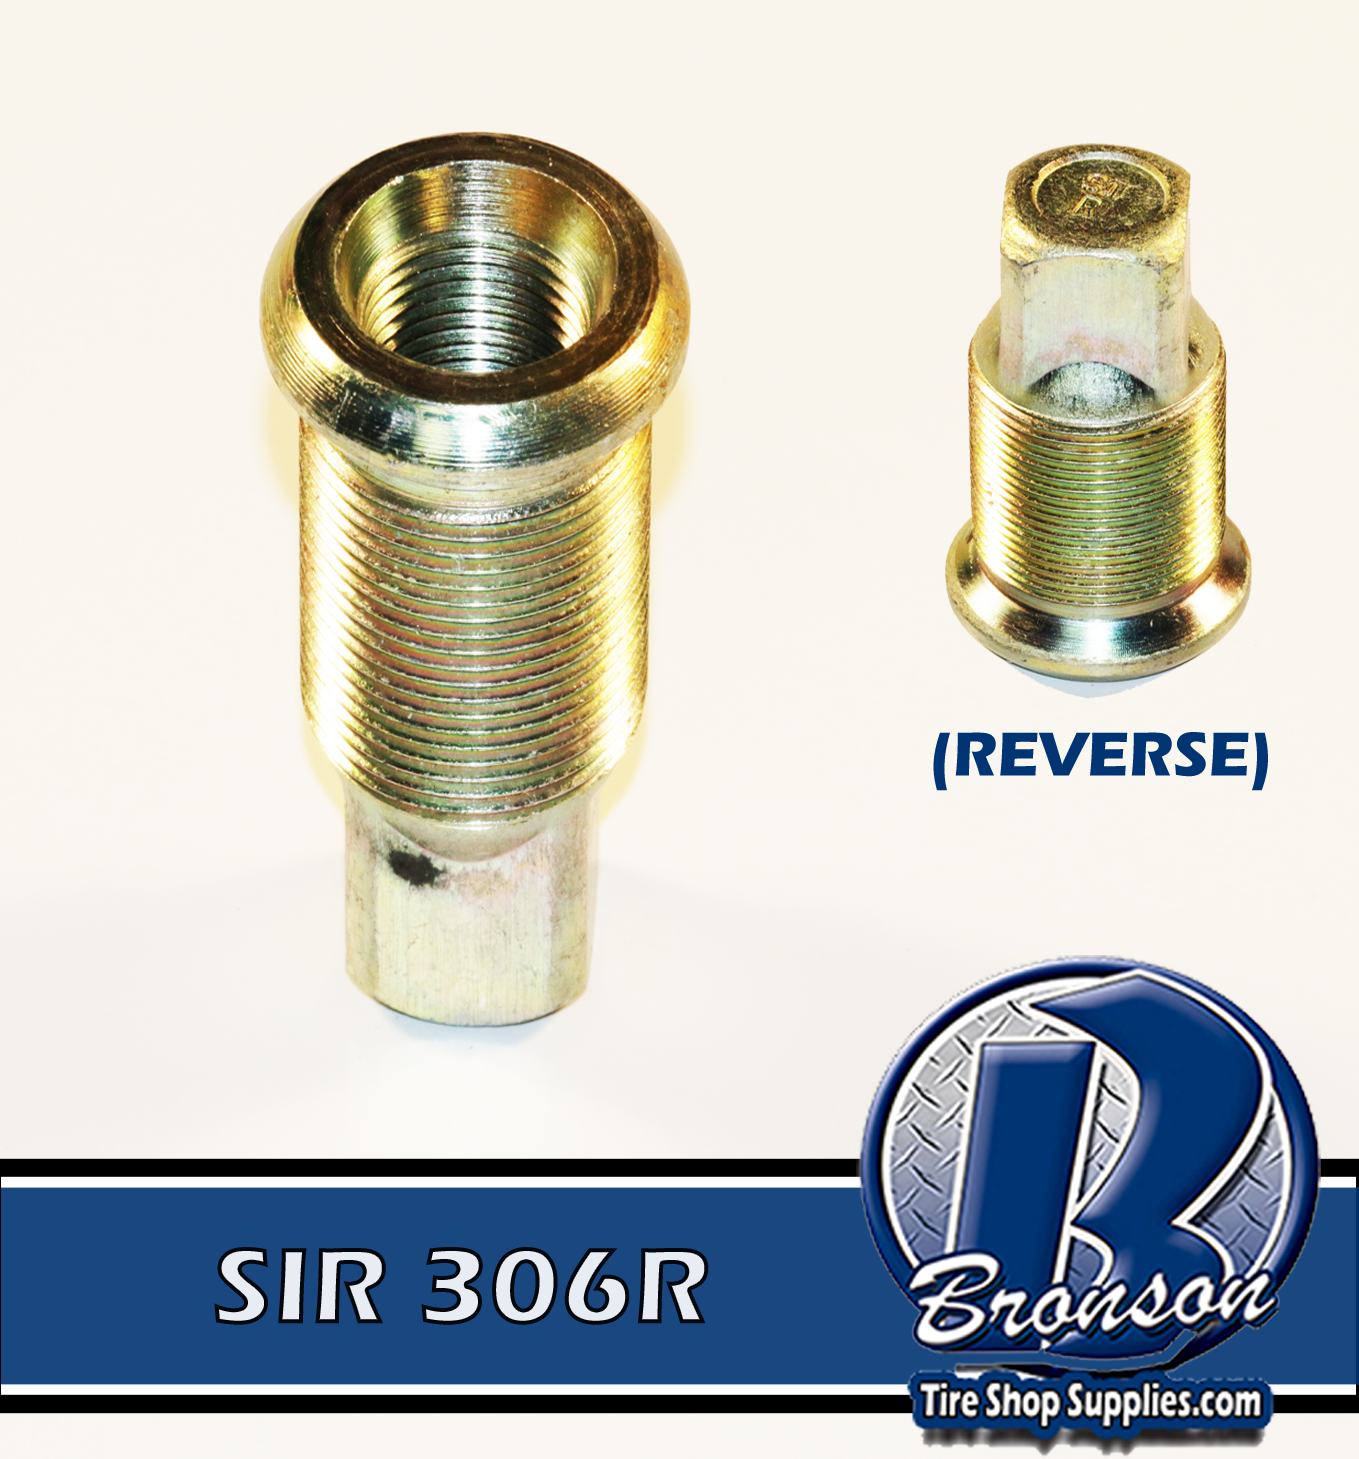 SIR 306R METRIC INNER NUT